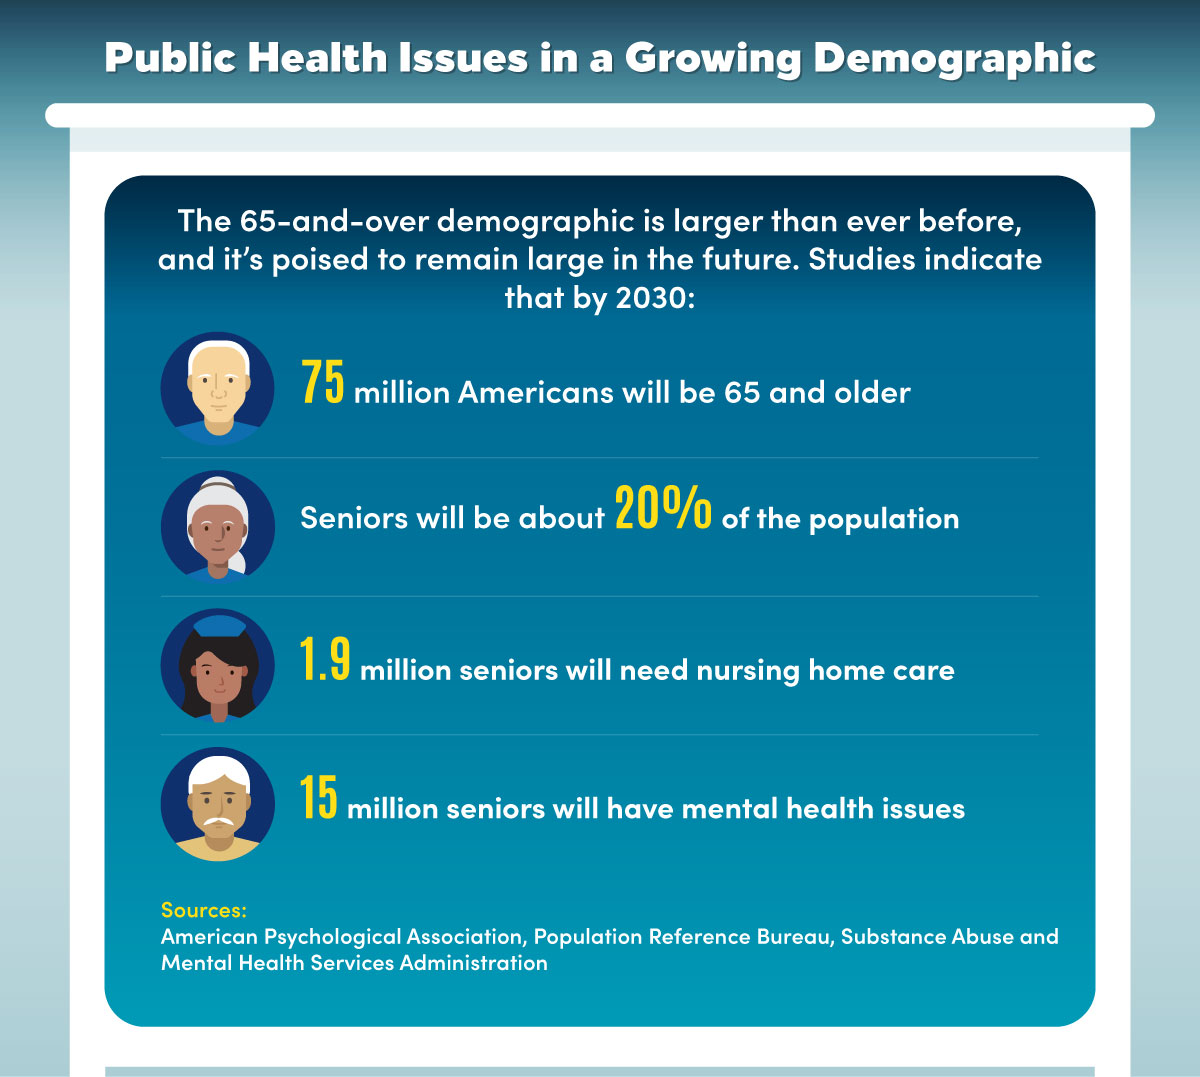 Public health issues are growing in the 65-and-older demographic.